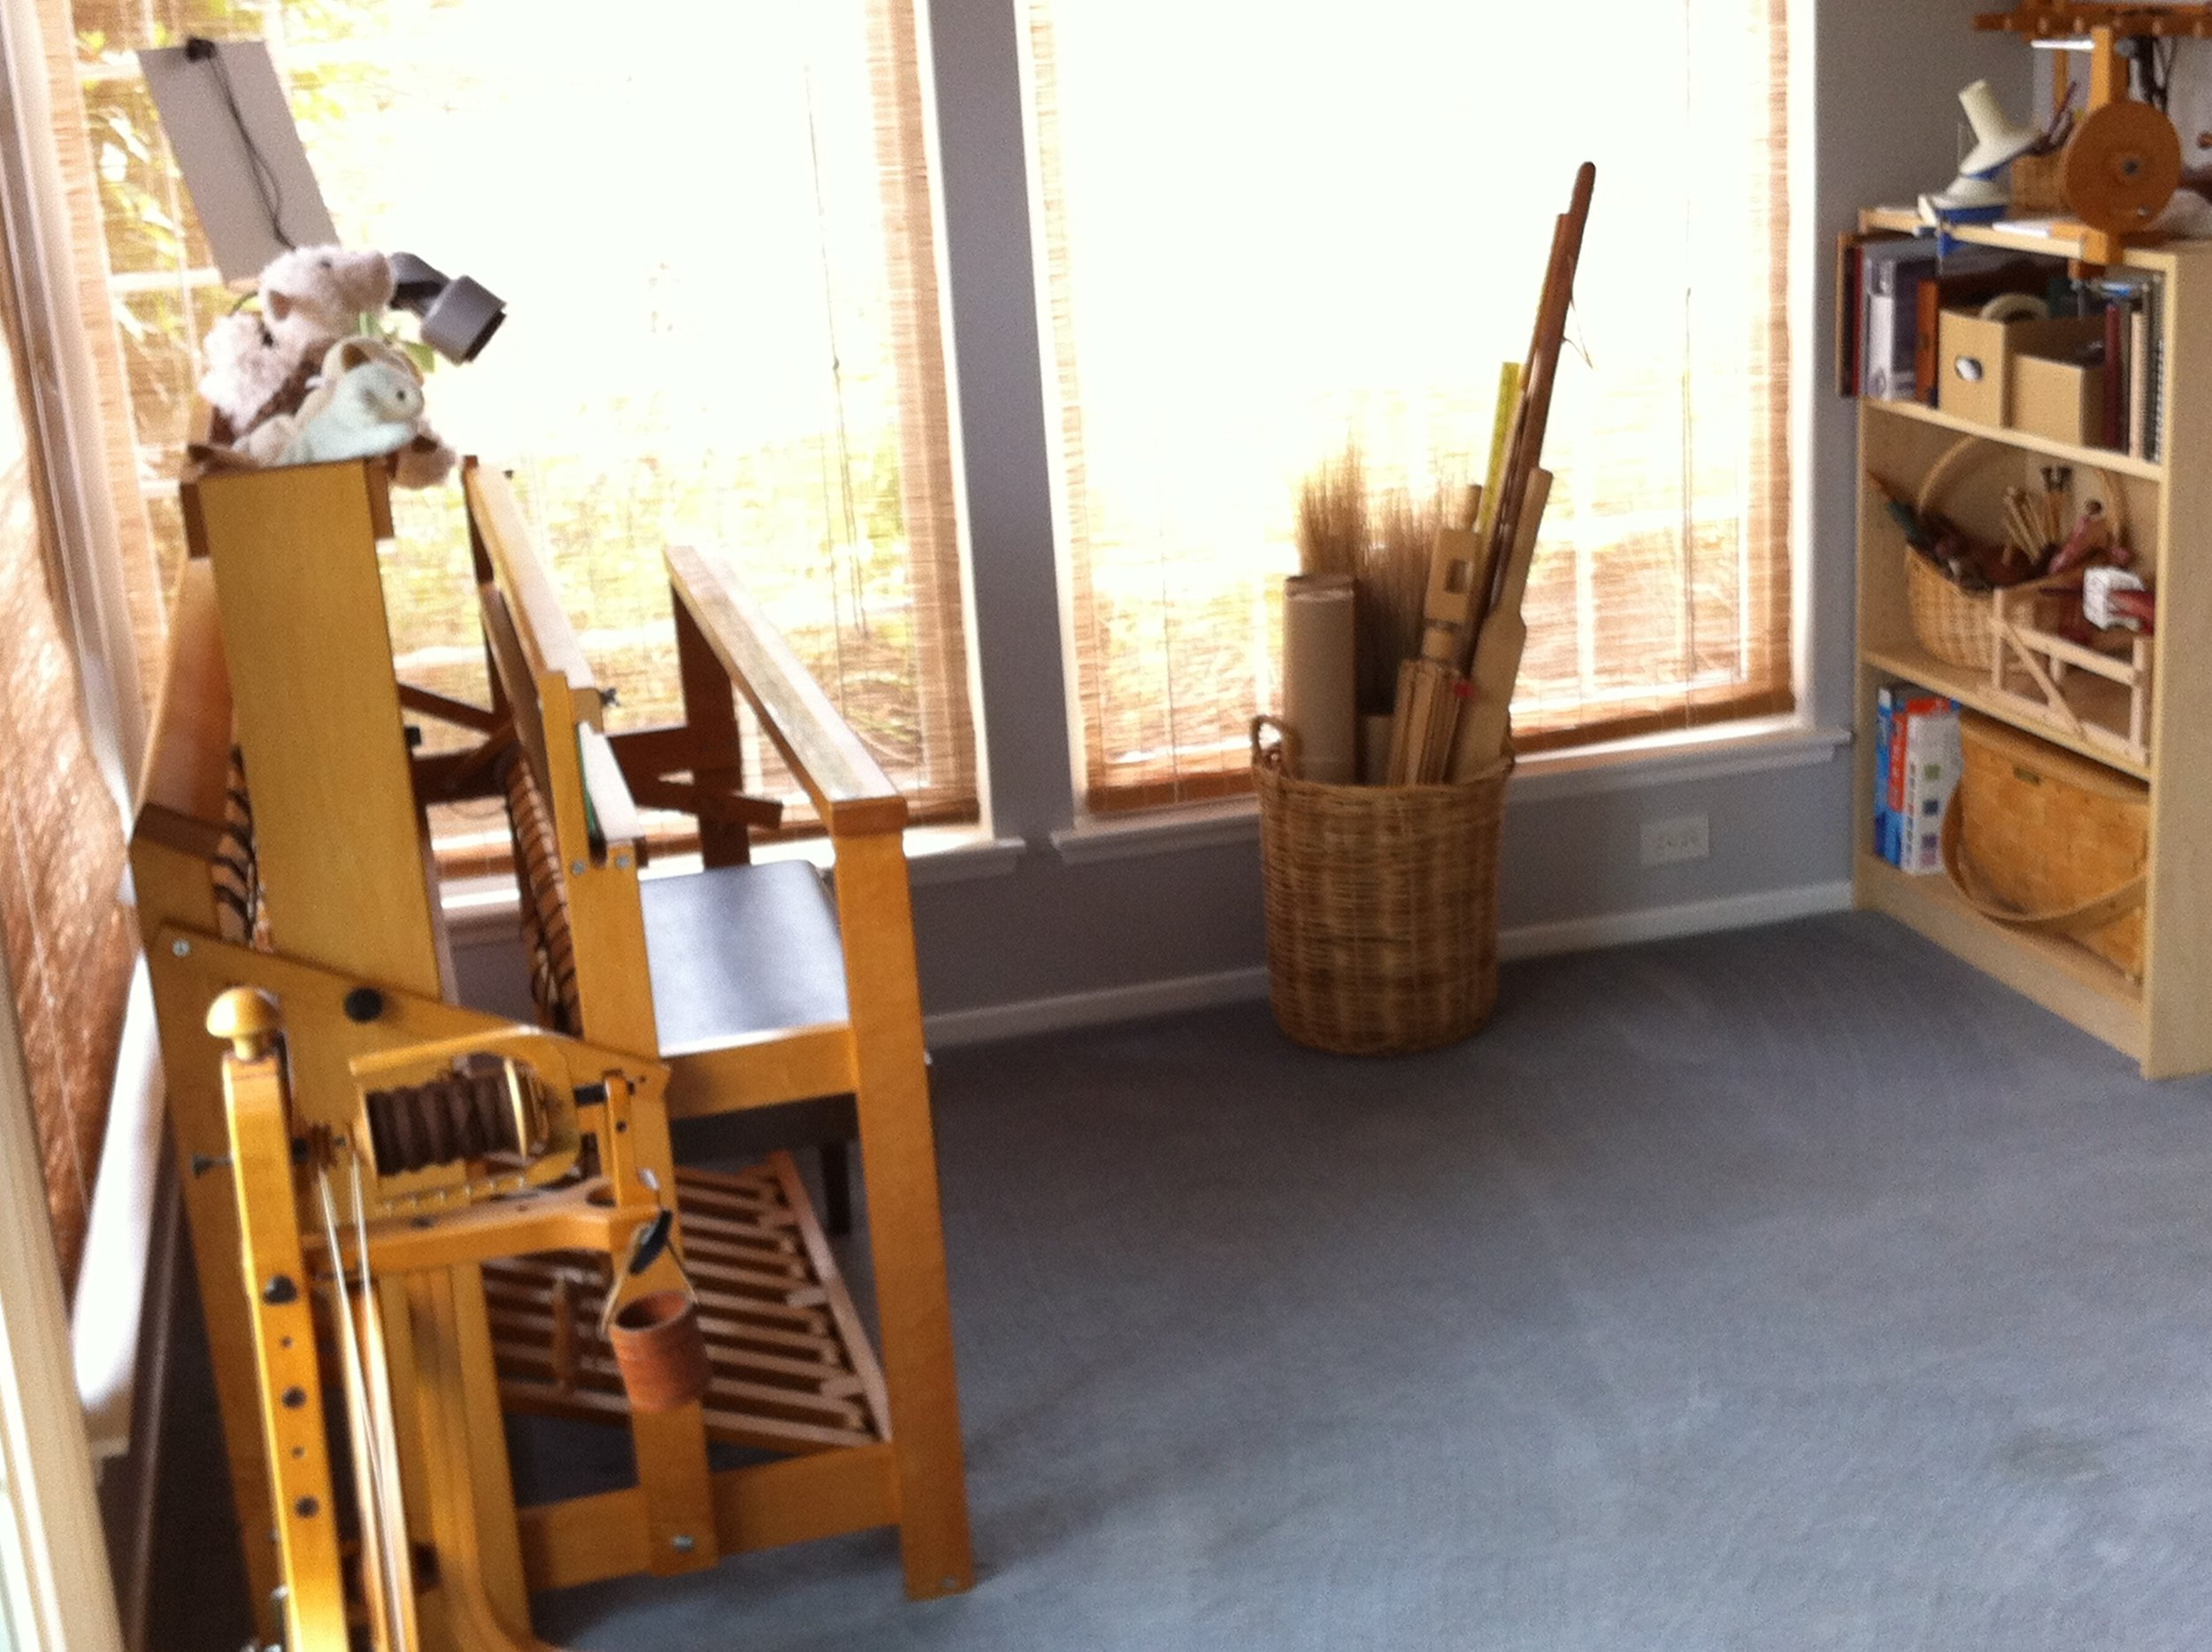 My loom room in an exceptionally neat state.